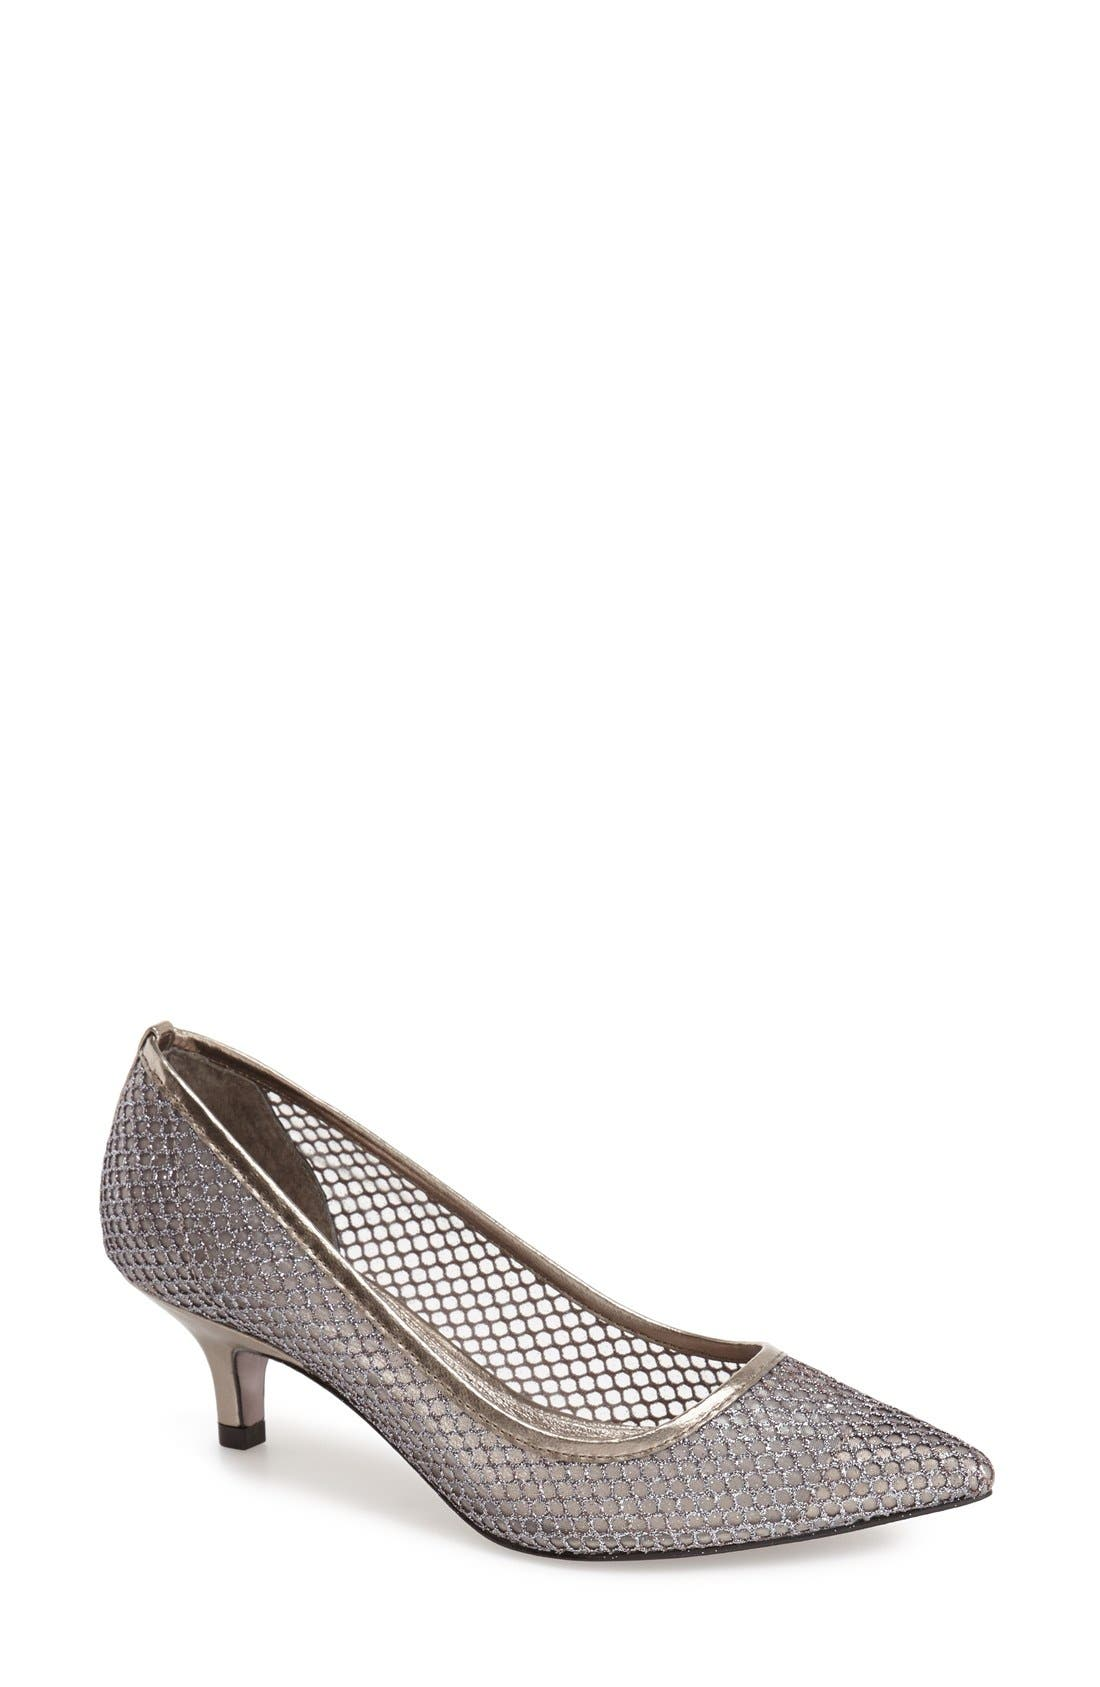 Alternate Image 1 Selected - Adrianna Papell 'Lois' Mesh Pump (Women)